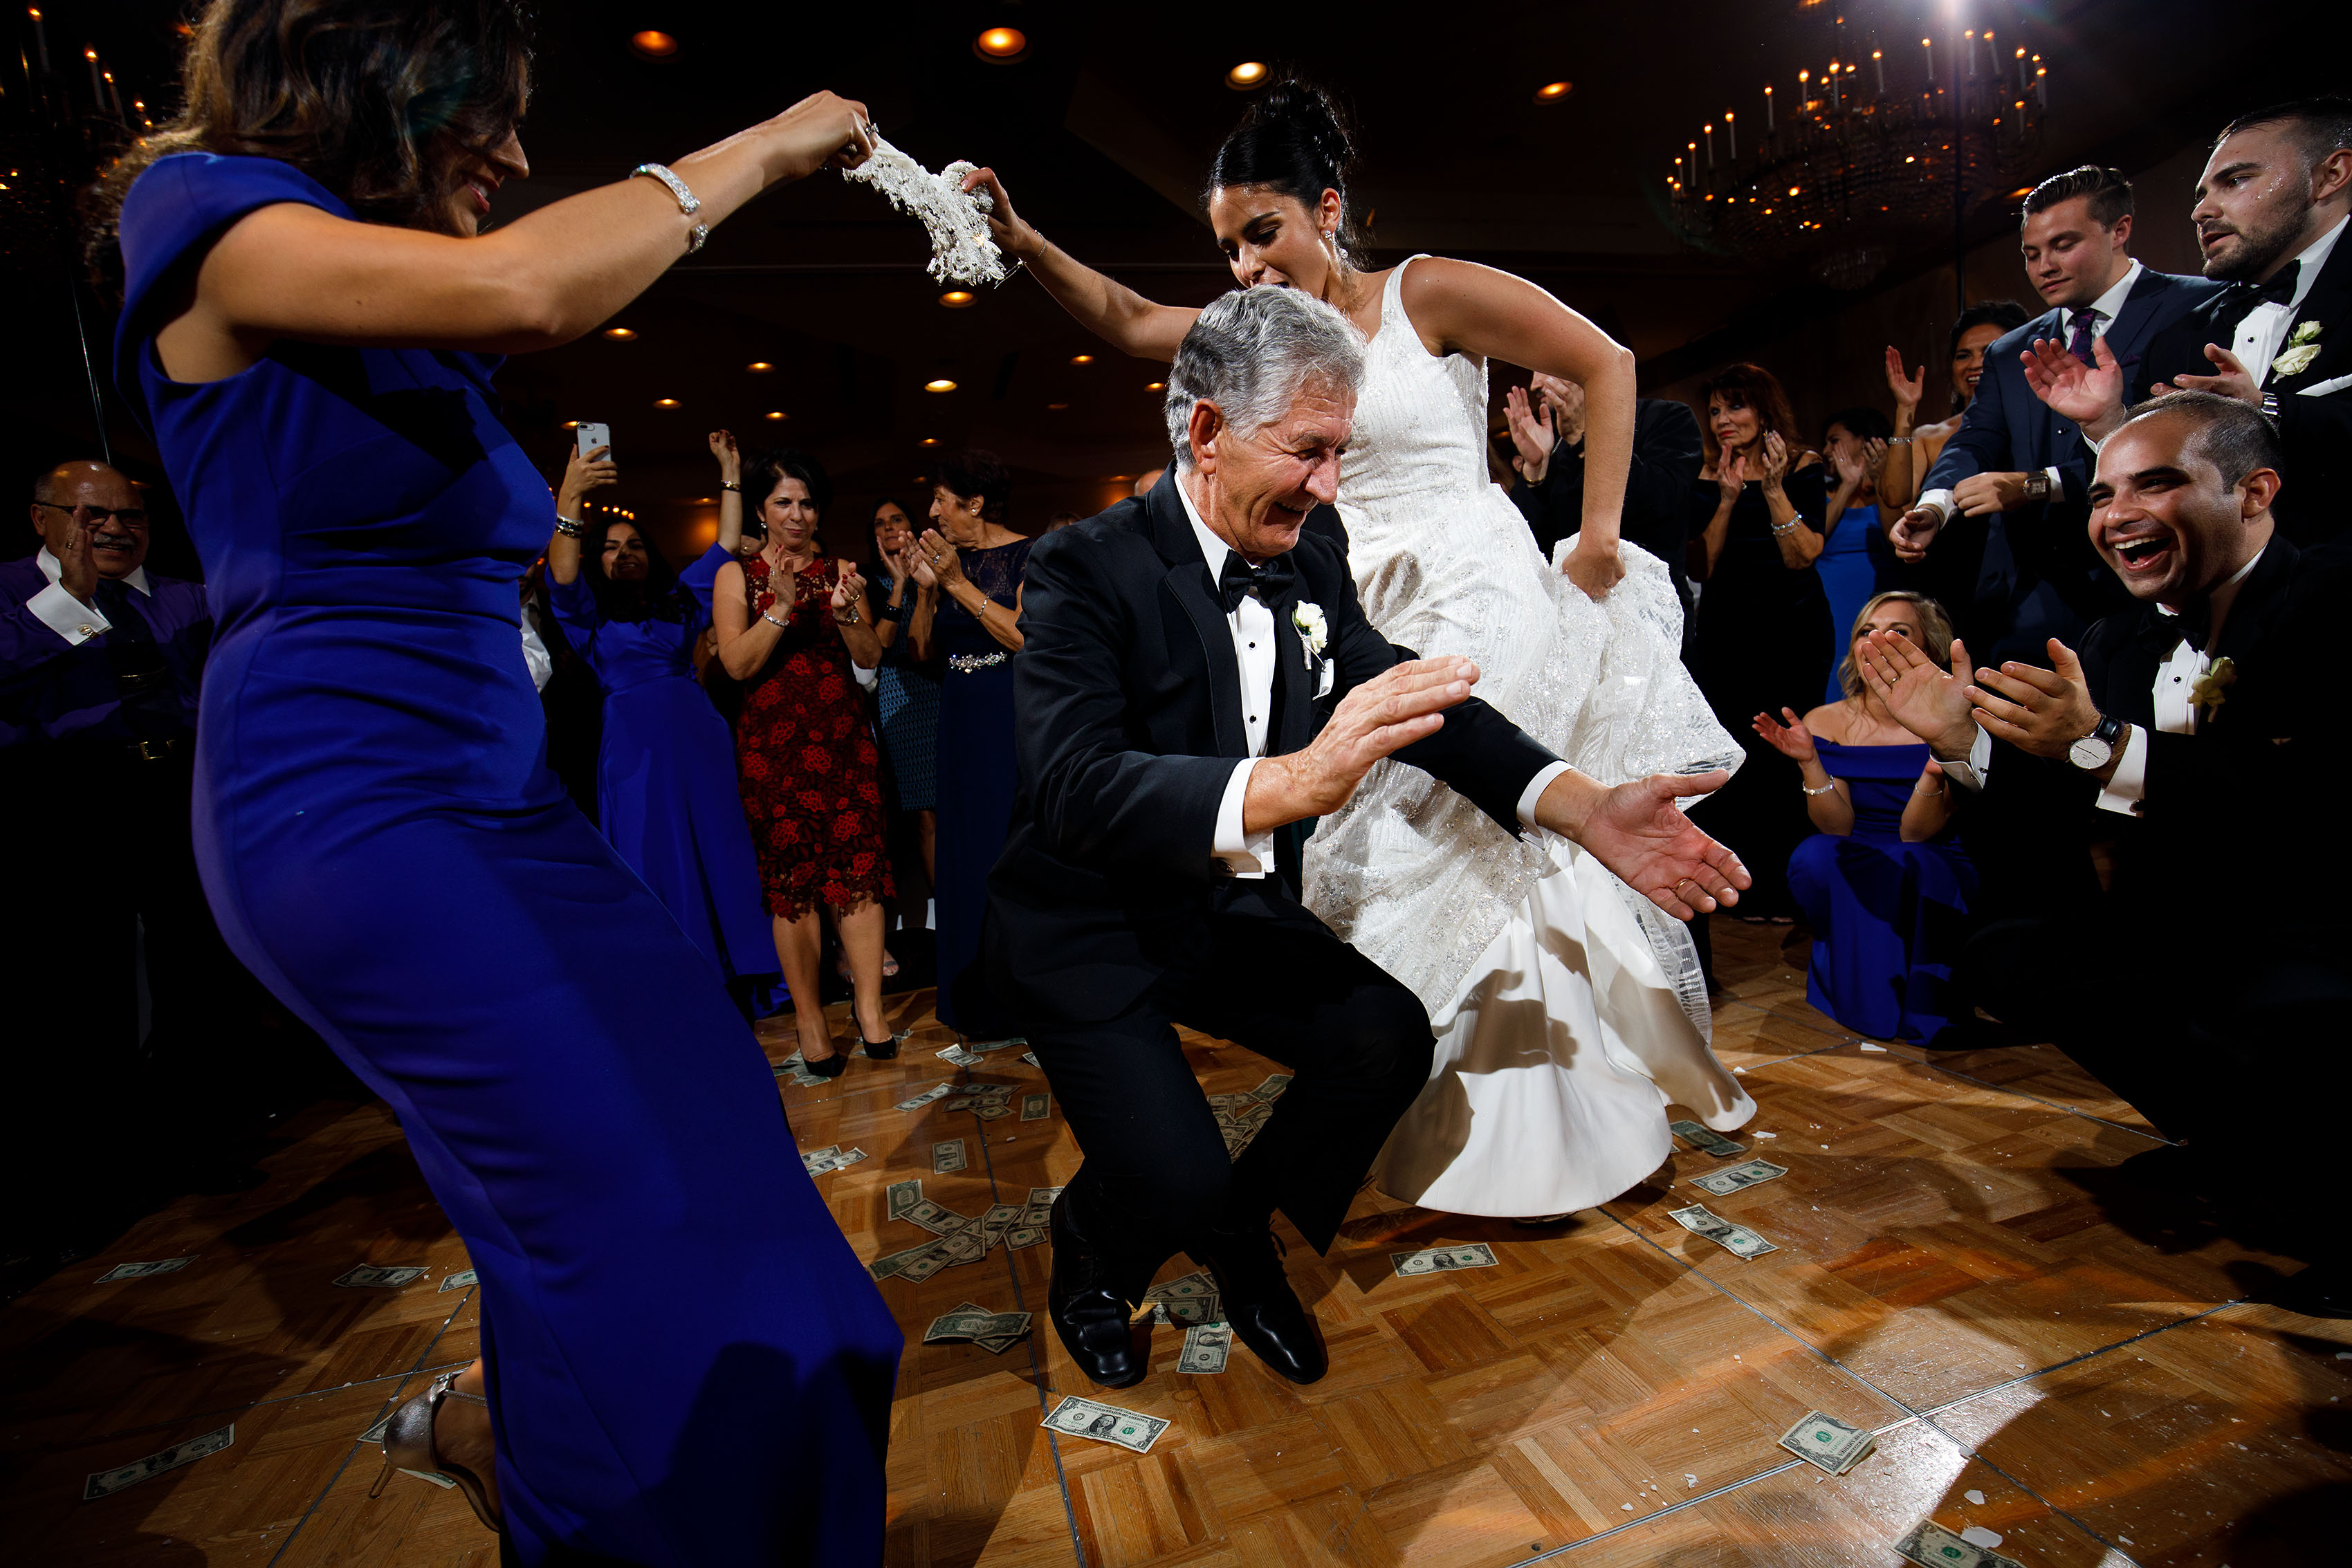 Guests dance during a traditional greek wedding at the Sheraton Albuquerque uptown